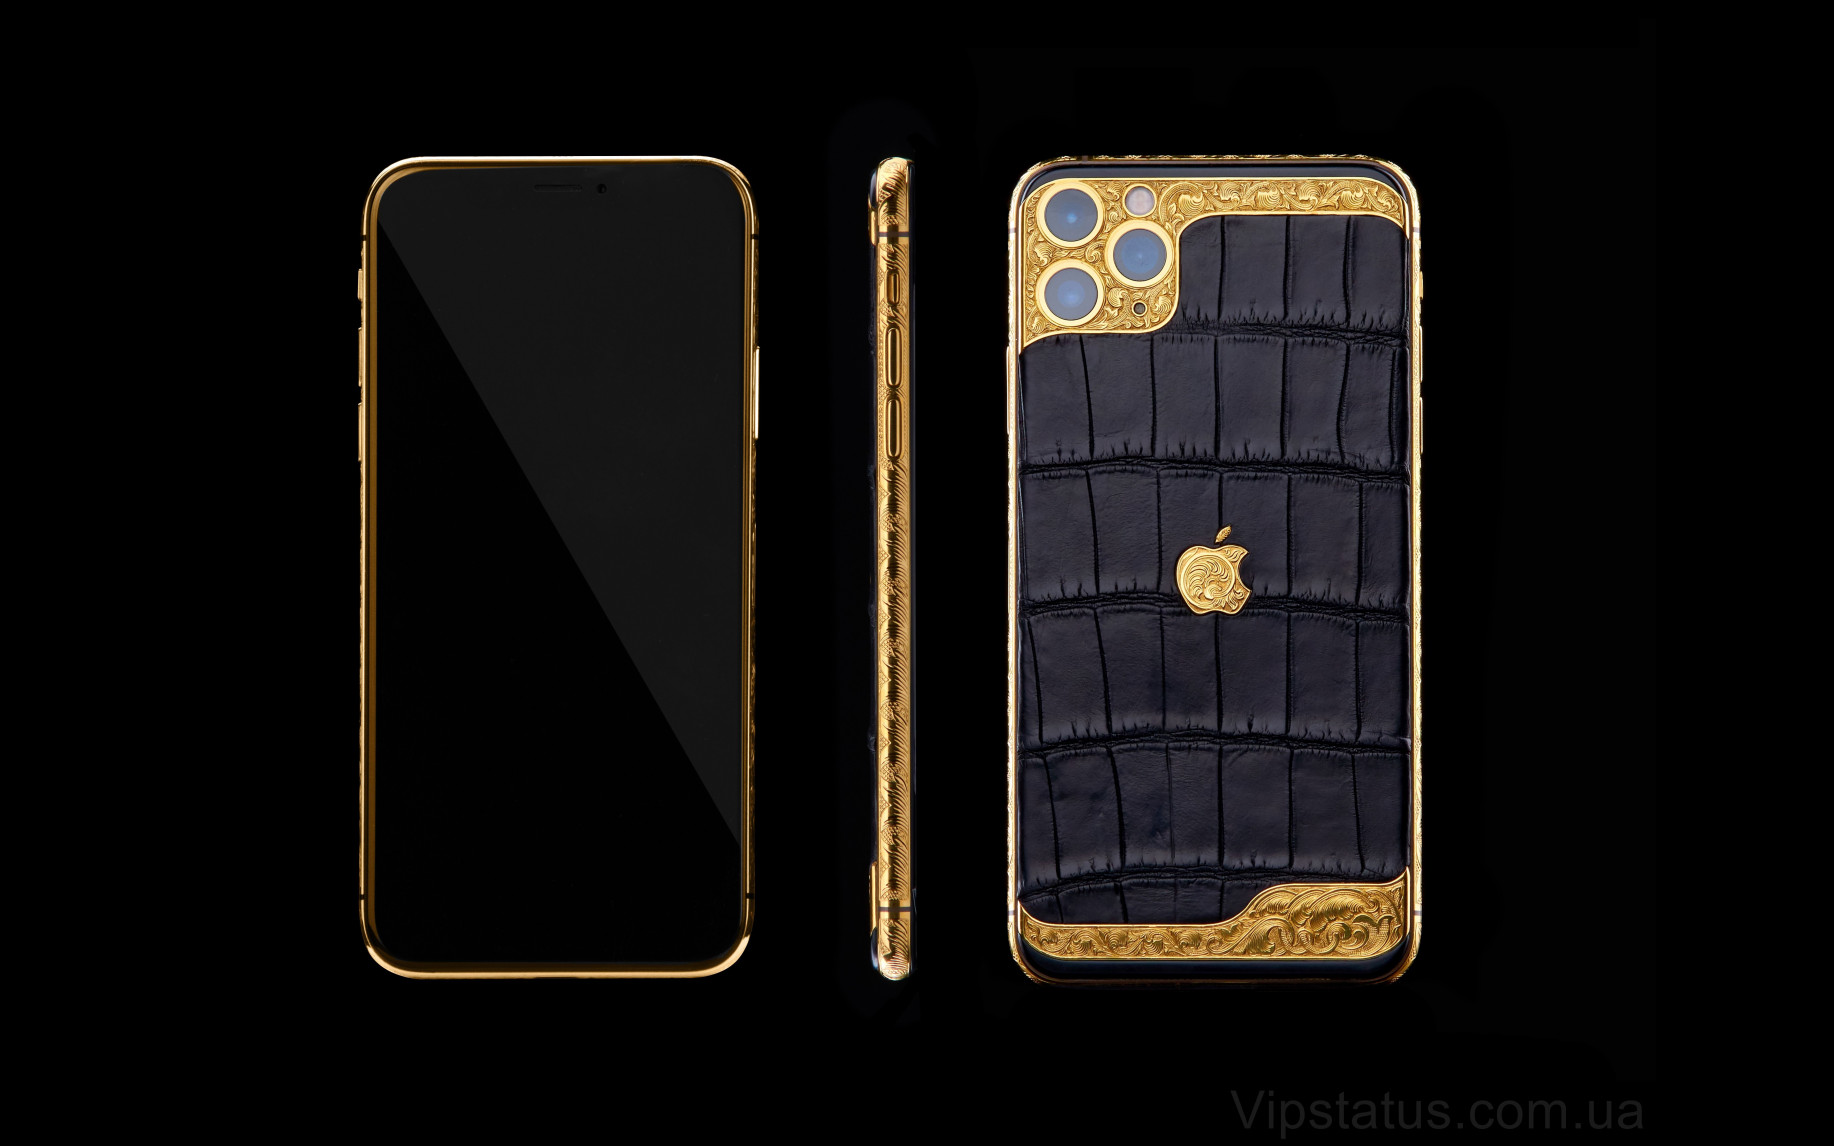 Elite English Lord IPHONE XS 512 GB English Lord IPHONE XS 512 GB image 4